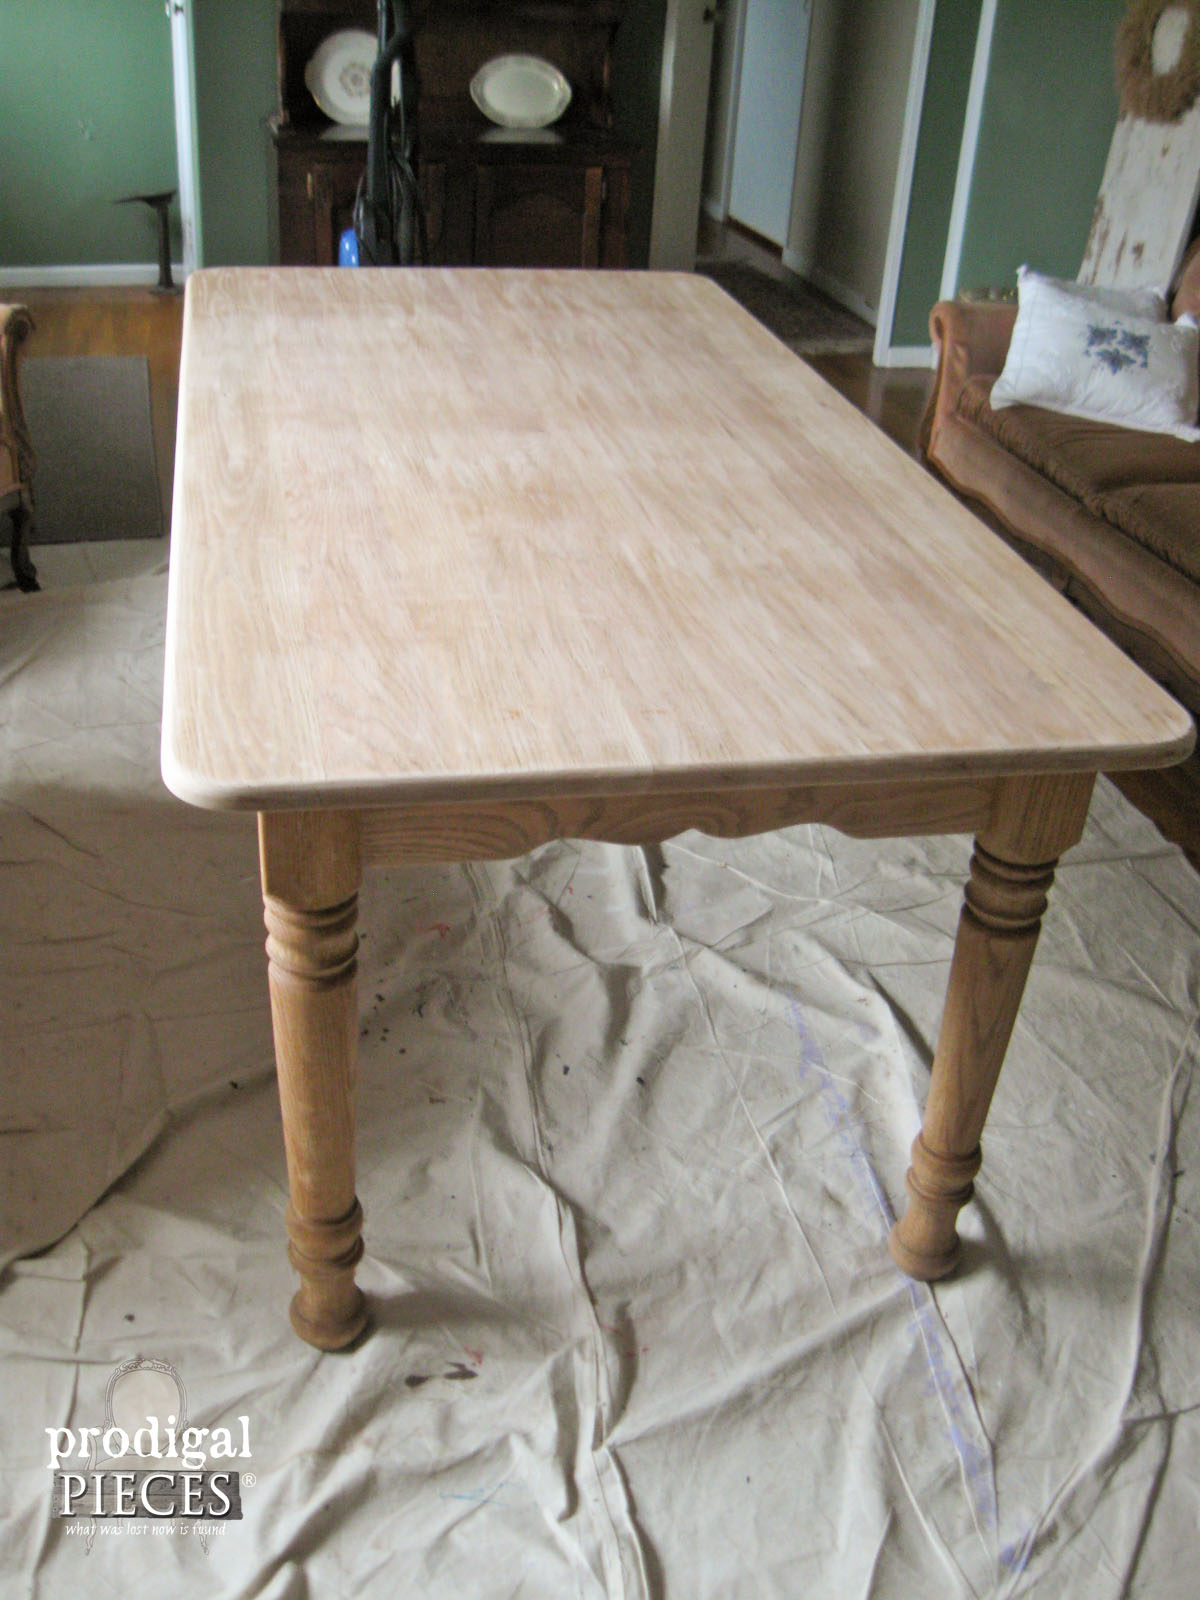 Farmhouse Table Sanded And Stripped For Whitewash Prodigal Pieces Www Prodigalpieces